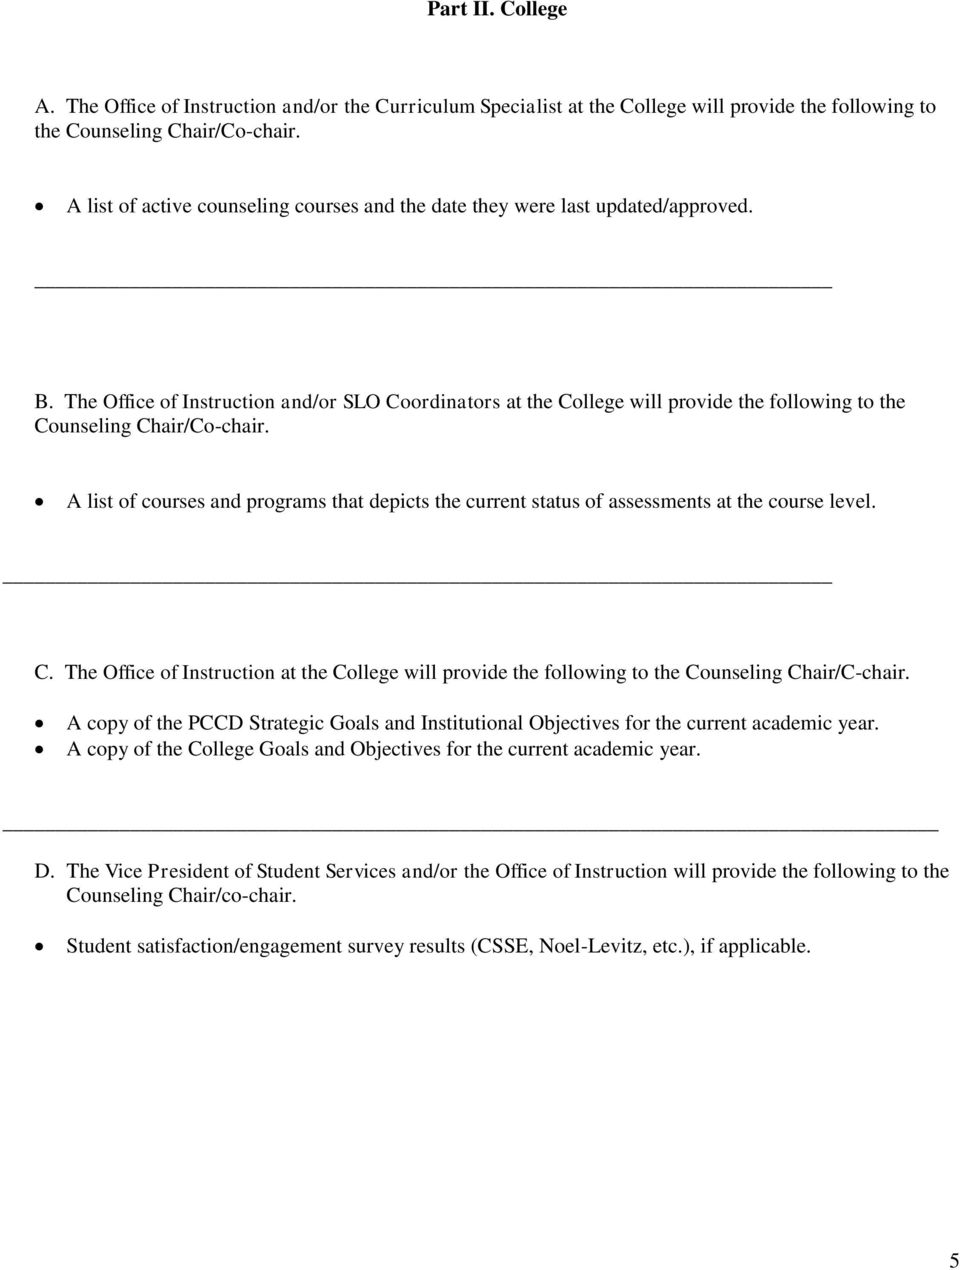 The Office of Instruction and/or SLO Coordinators at the College will provide the following to the Counseling Chair/Co-chair.